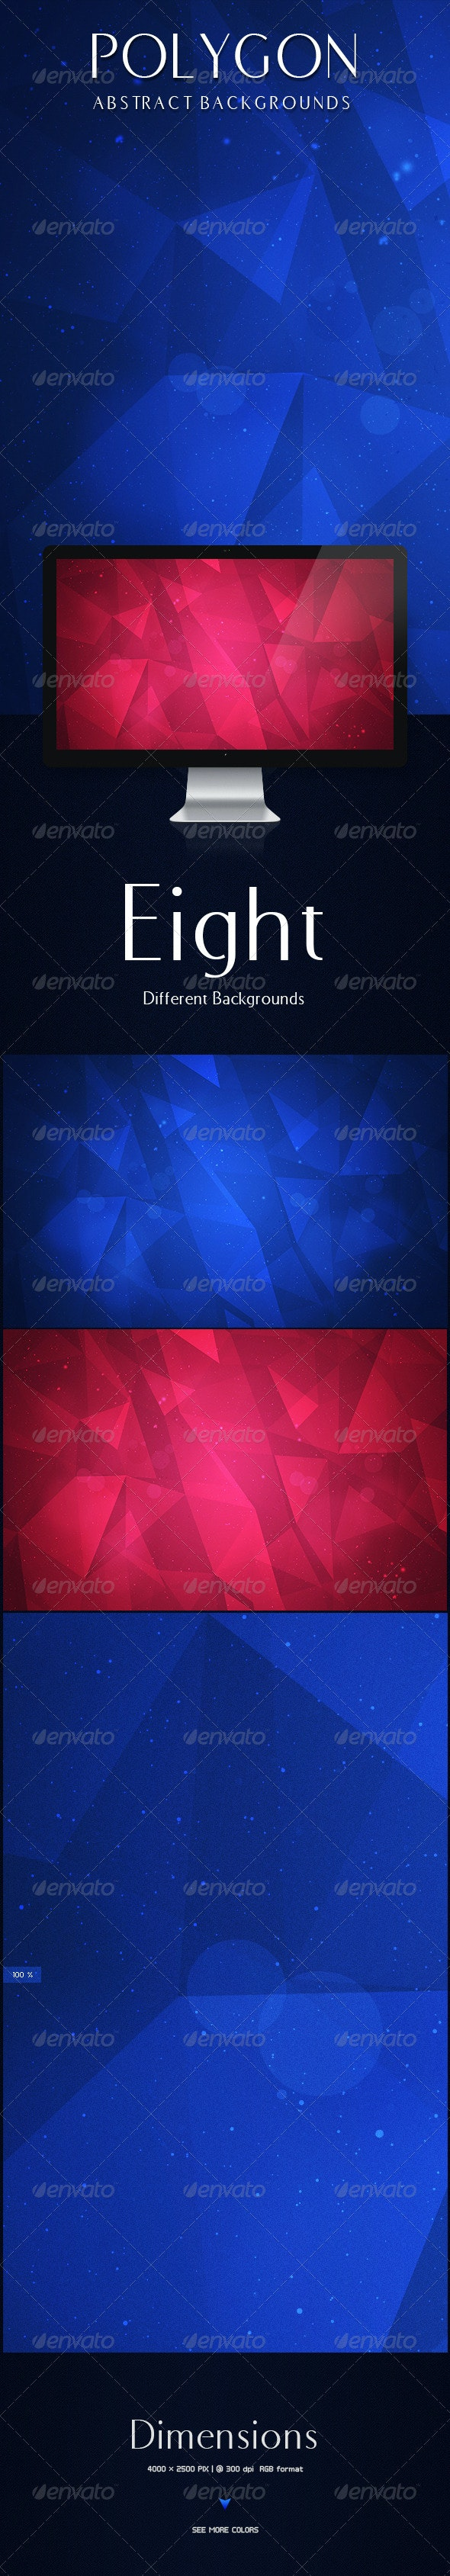 Polygon Abstract Backgrounds  - Miscellaneous Backgrounds